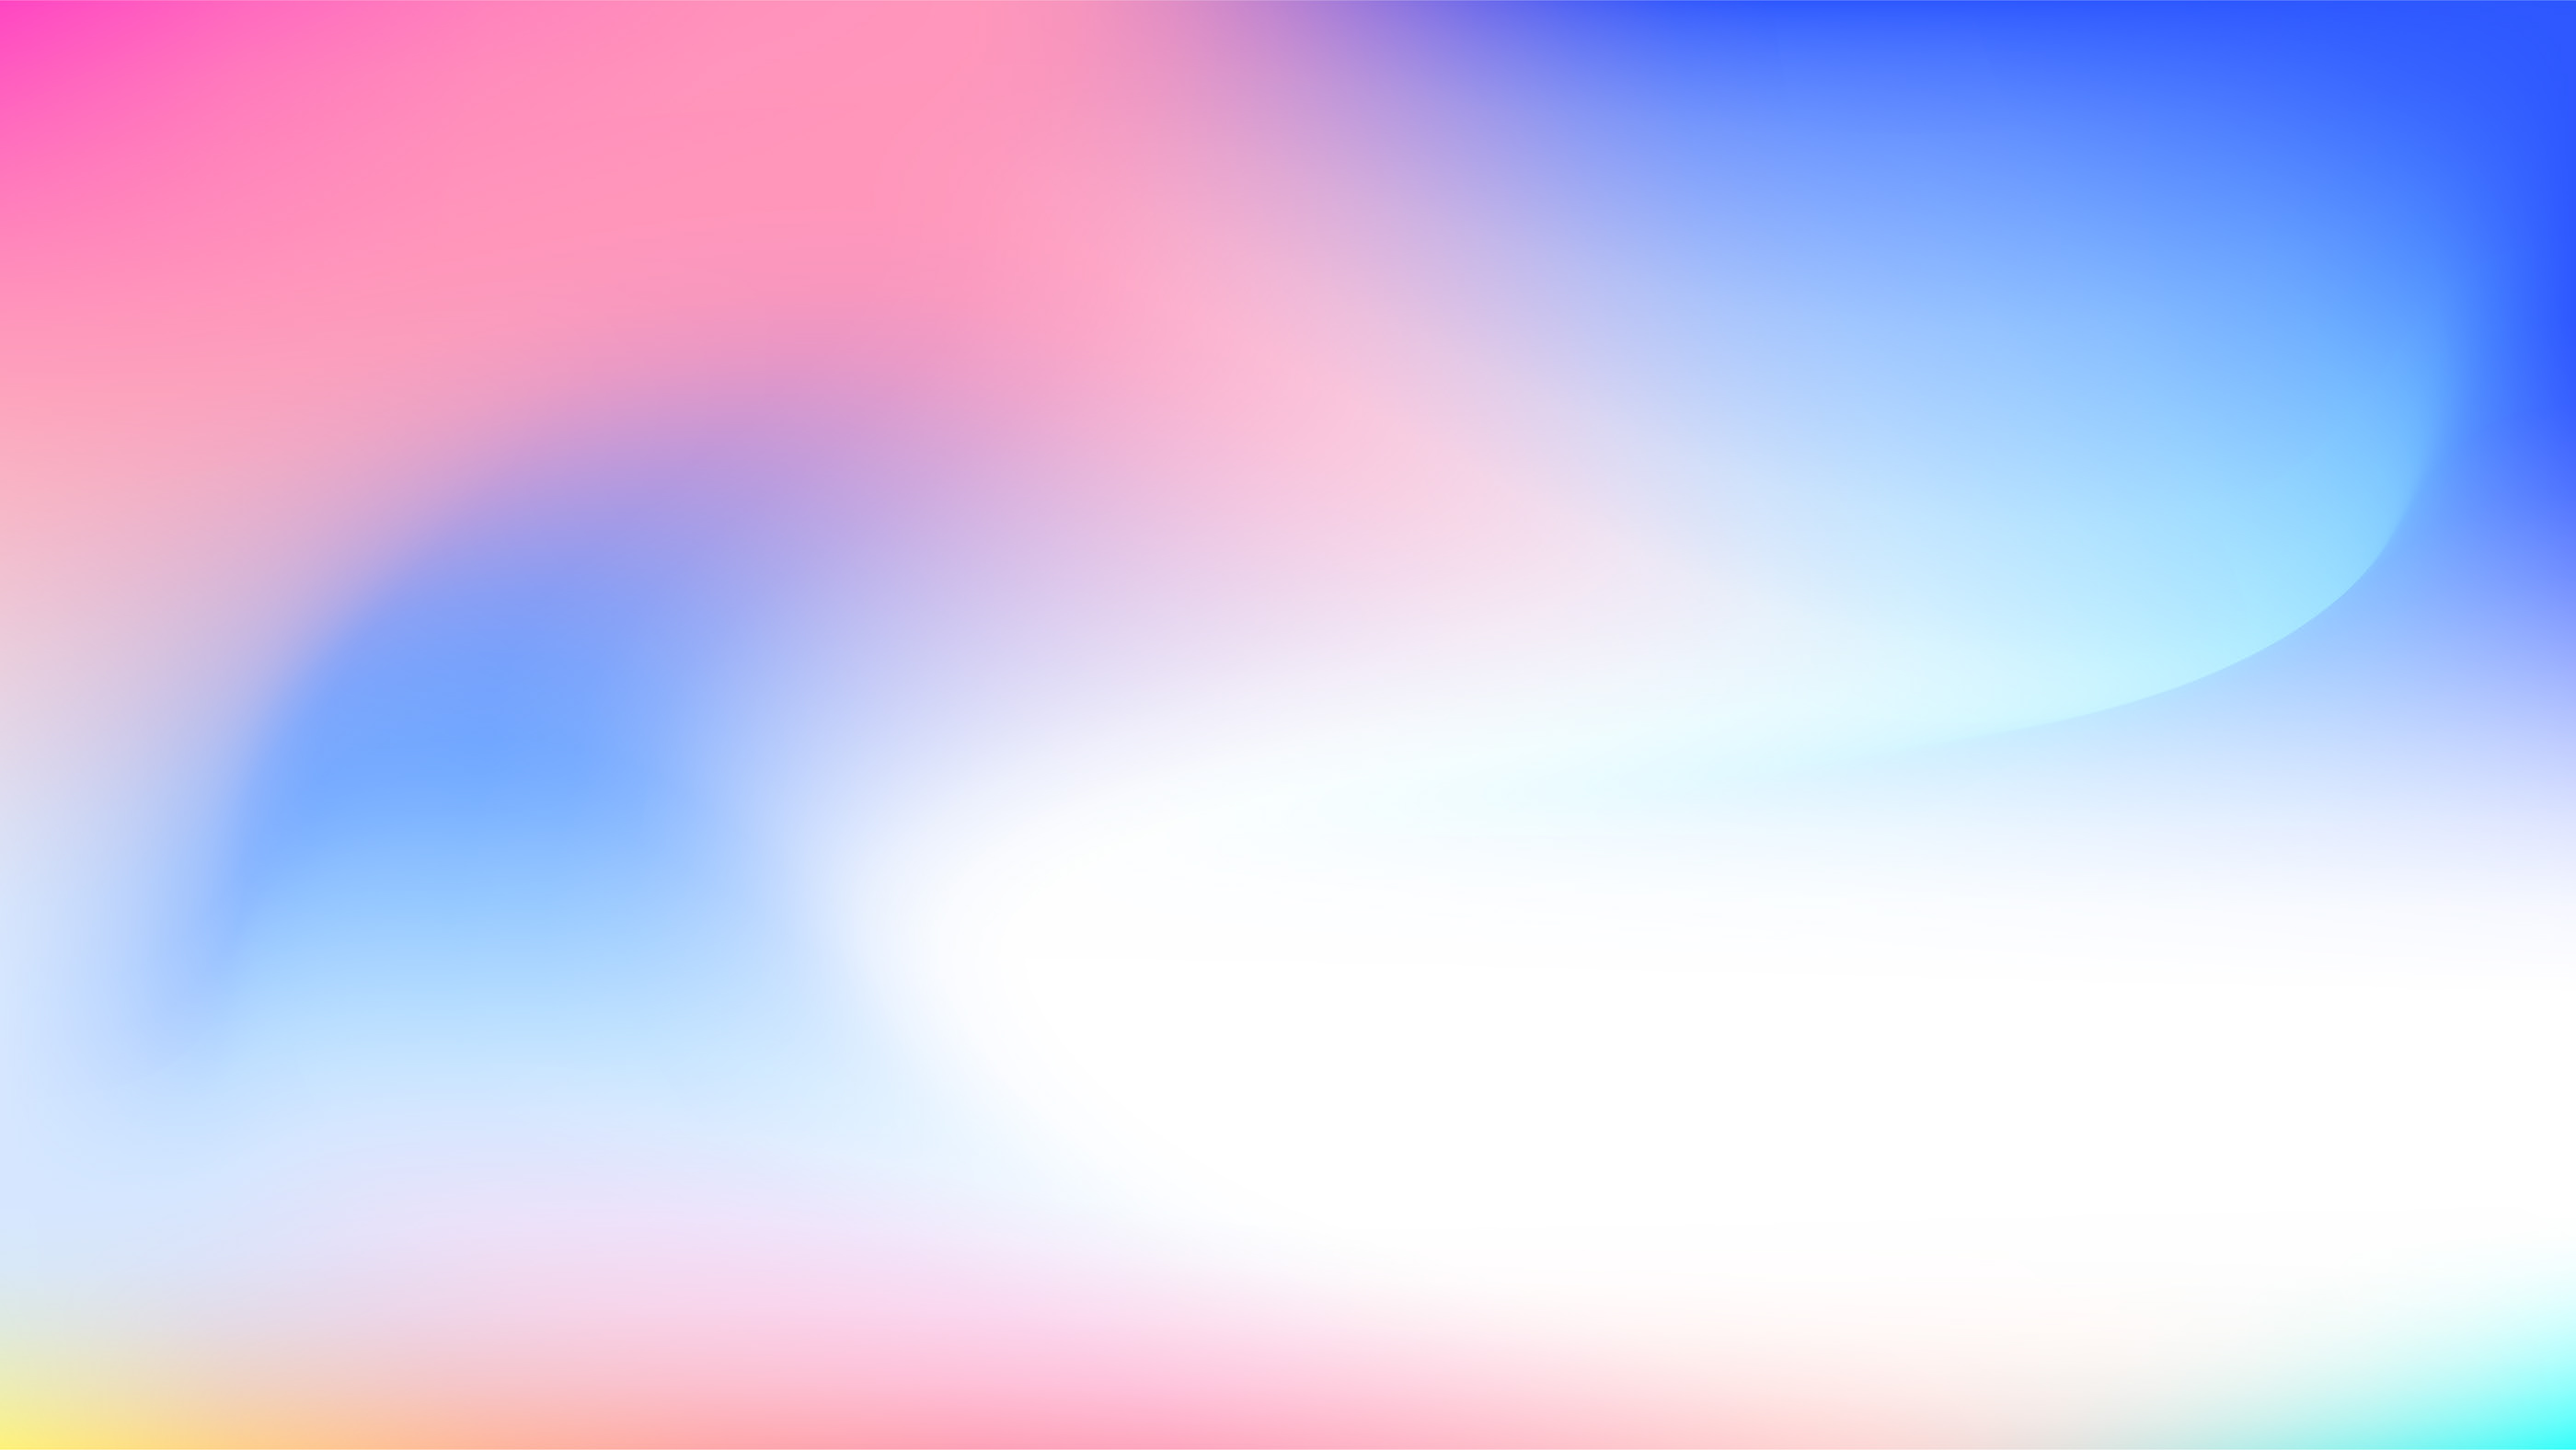 Free Holographic, Multicolor, Unicorn Vector Gradients - 11